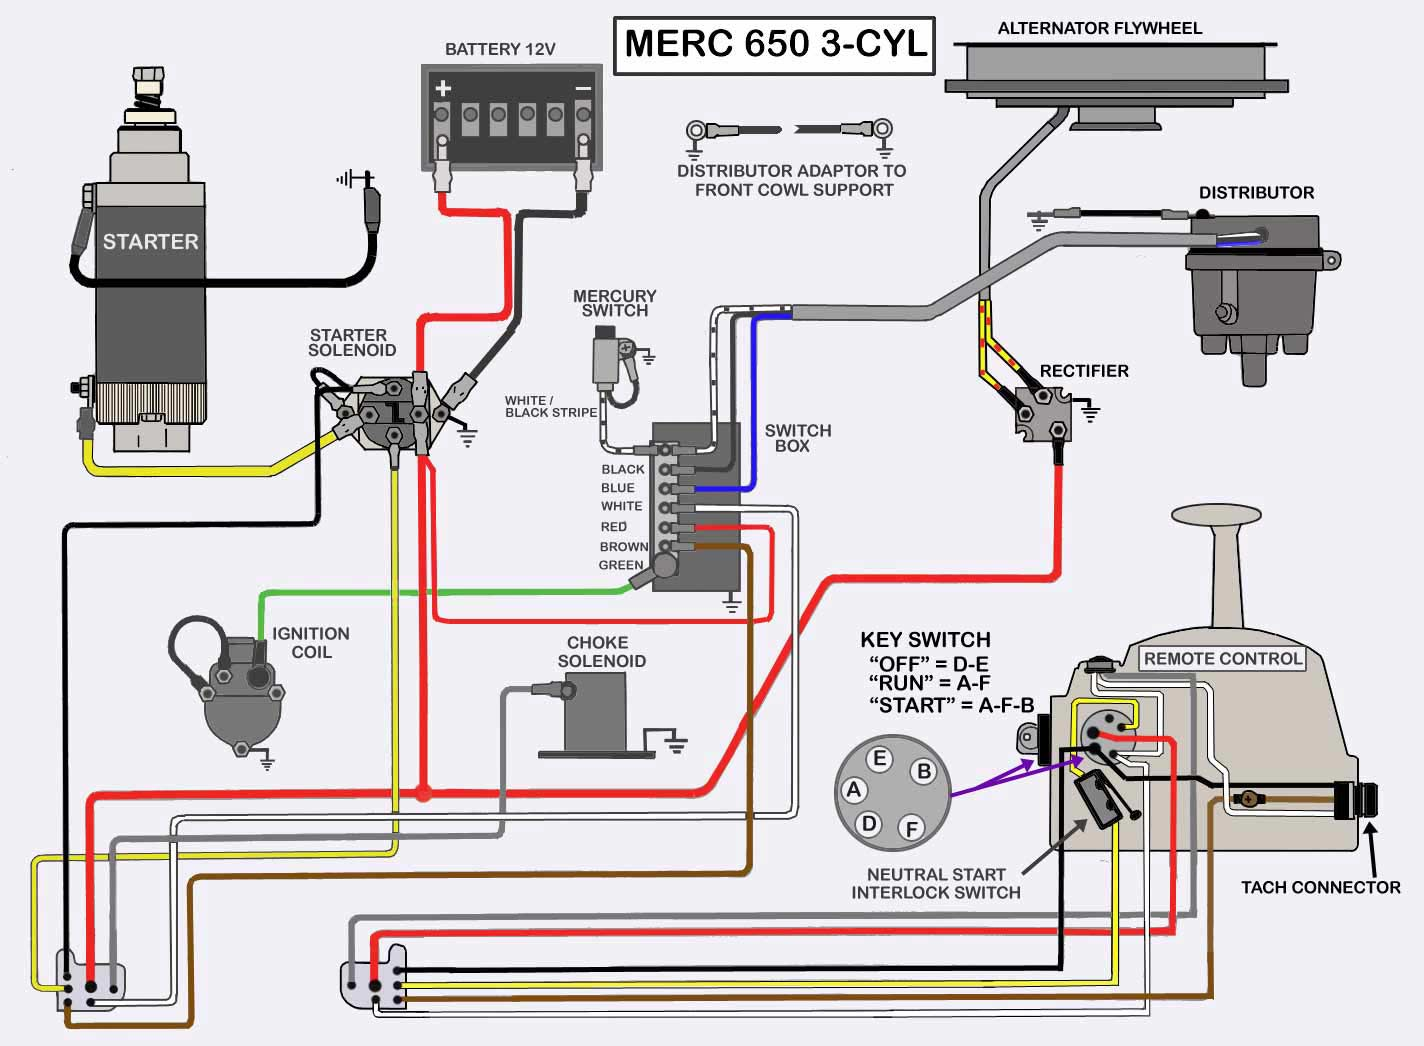 Mercury Switch Wiring - Data Wiring Diagram on mercury white ignition switch wiring diagram, mercury key switch wiring diagram, mercury marine kill switch, mercury outboard control wiring diagram, mercury marine ignition switch connector,